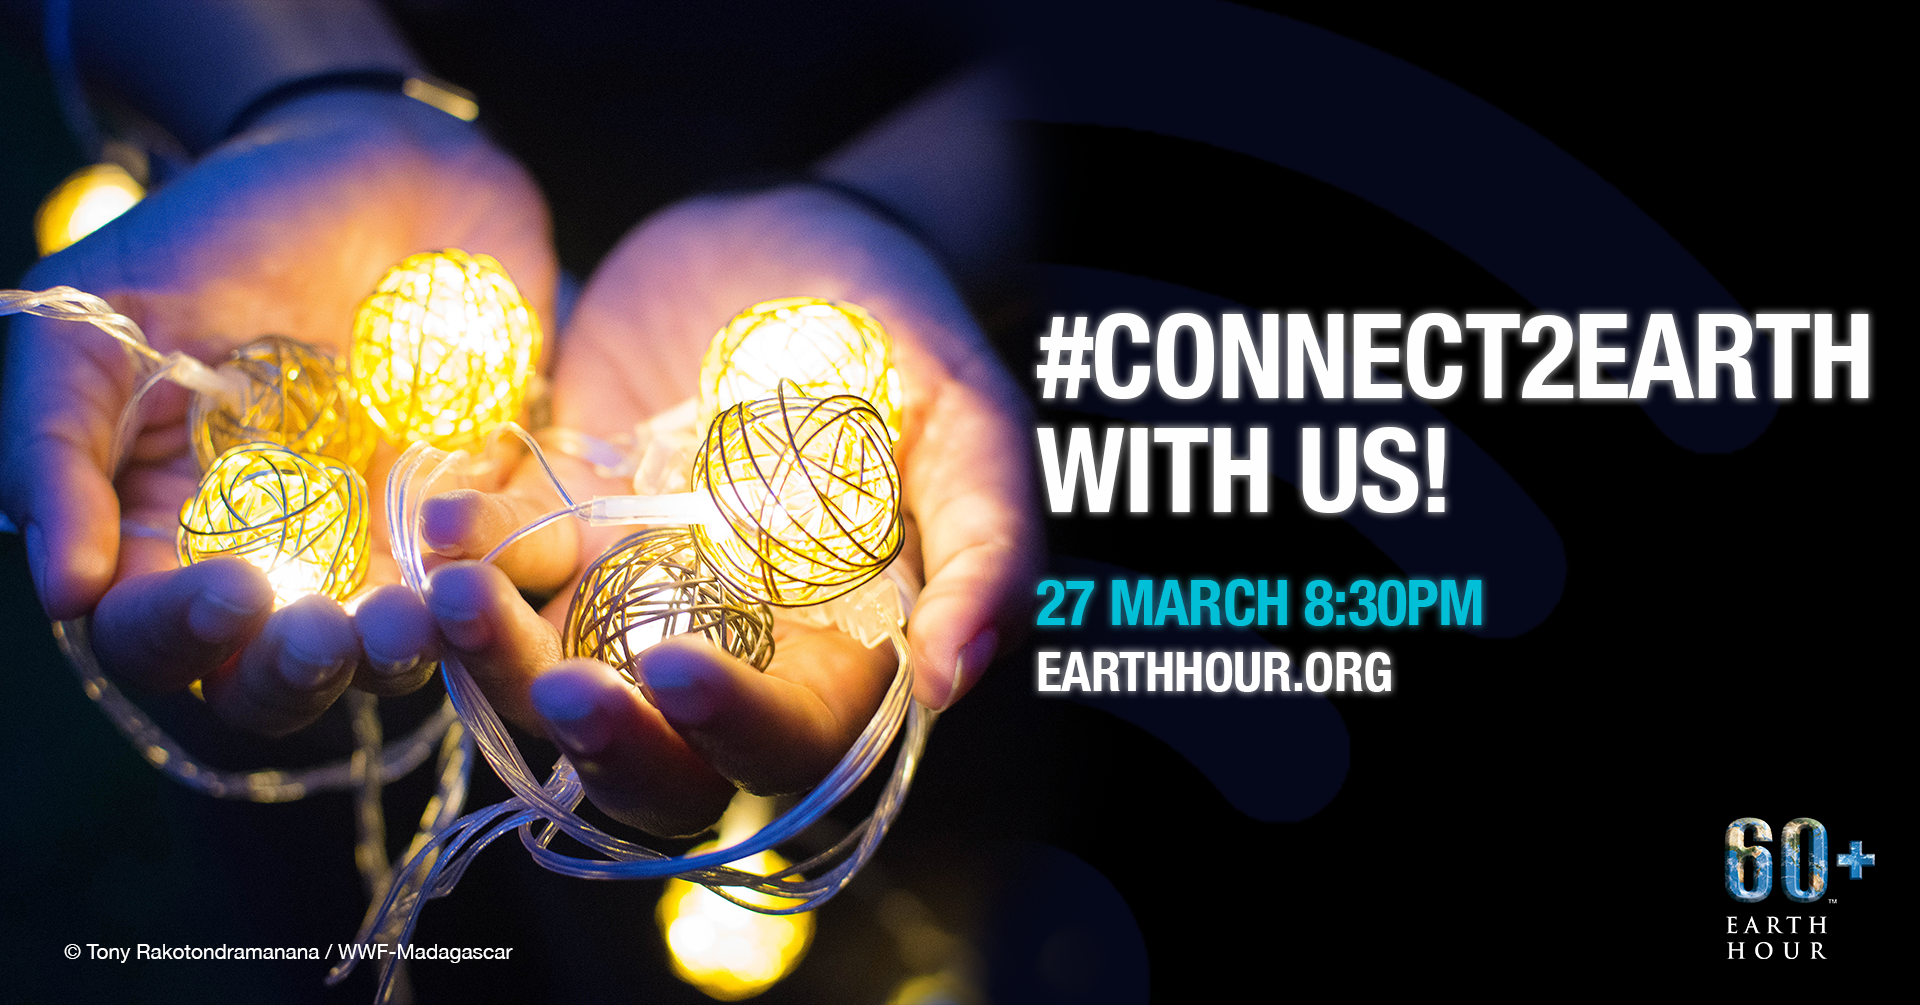 hands holding small lights text says # connect 2 earth with us! 27th March 8:30pm earth hour .org